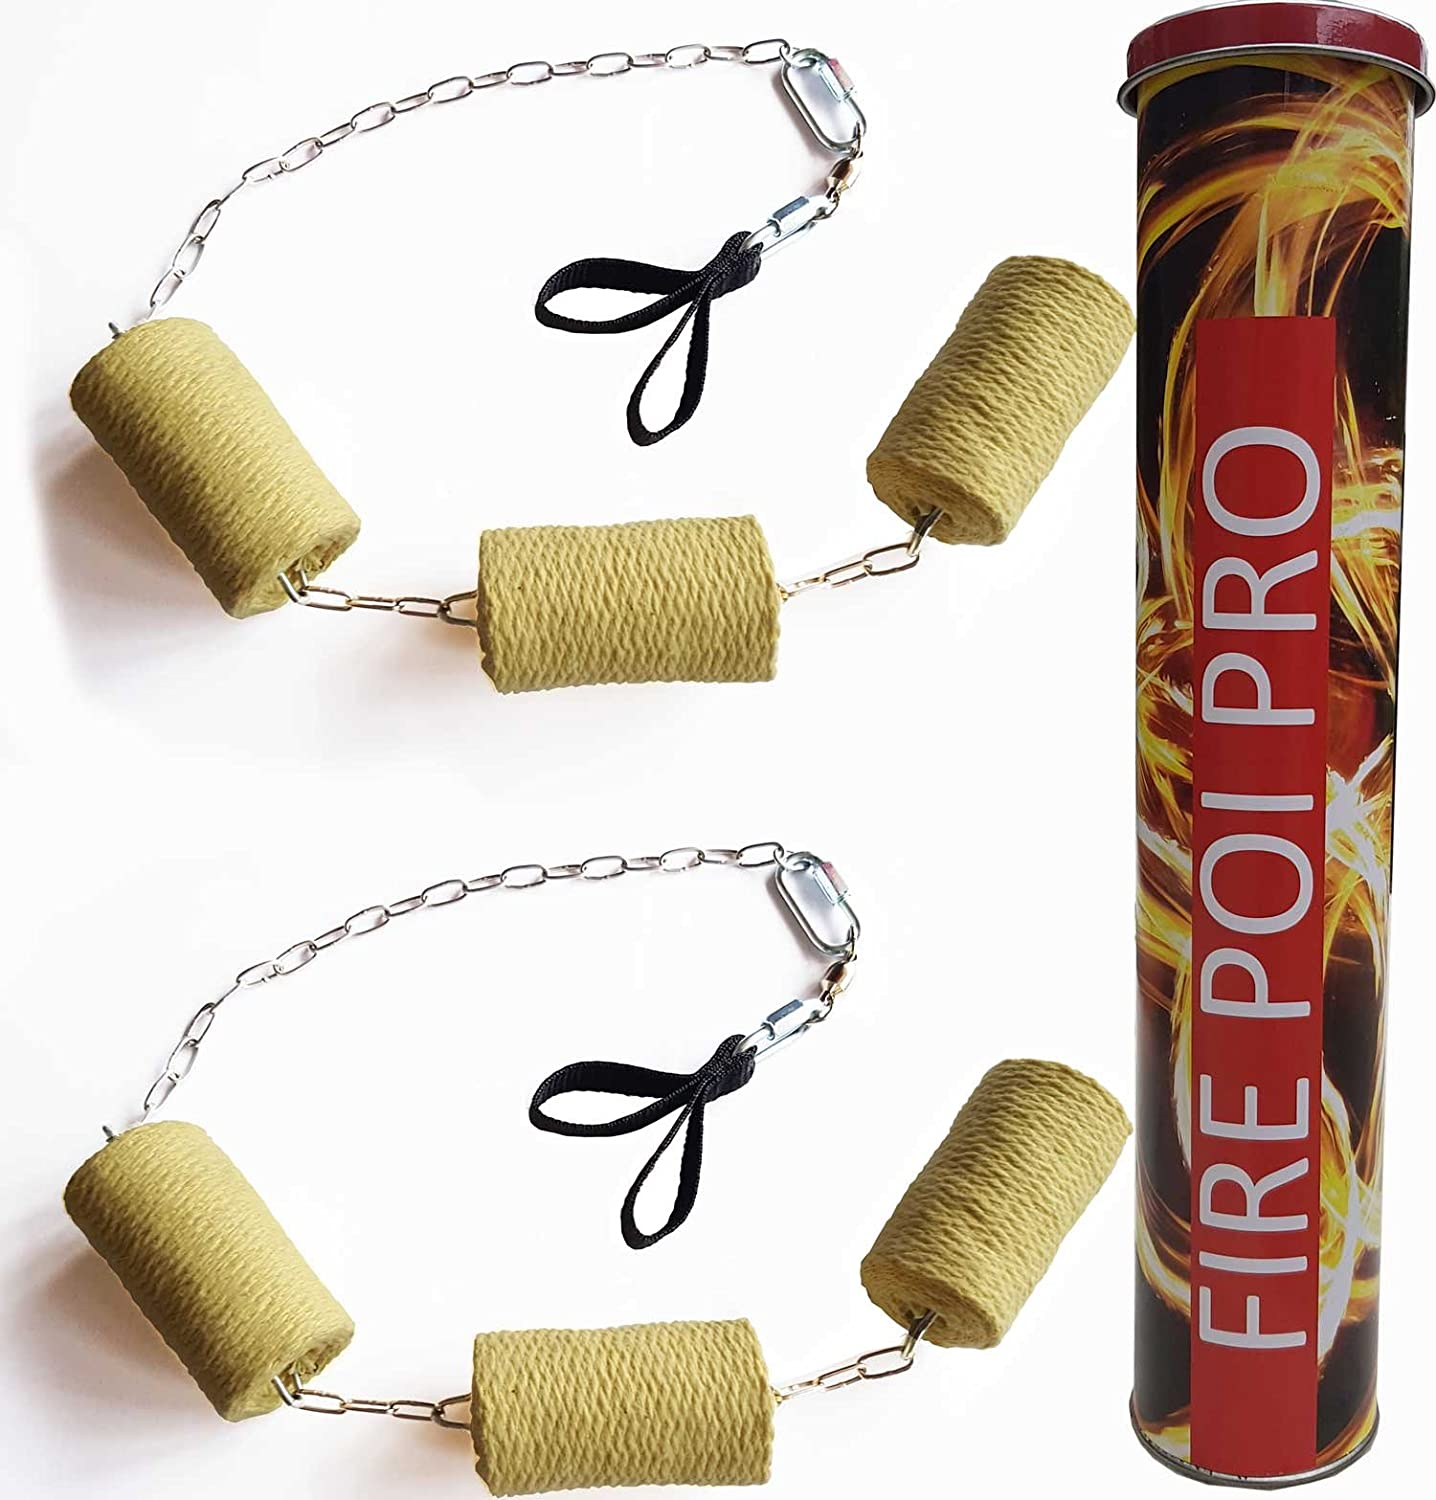 PassePasse Pair of Triple Pro Fire Poi + Extinguisher, Chains with 6x7cmx75cm Kevlar fire wick, Double finger loops, Swivel Bearings & Delta links